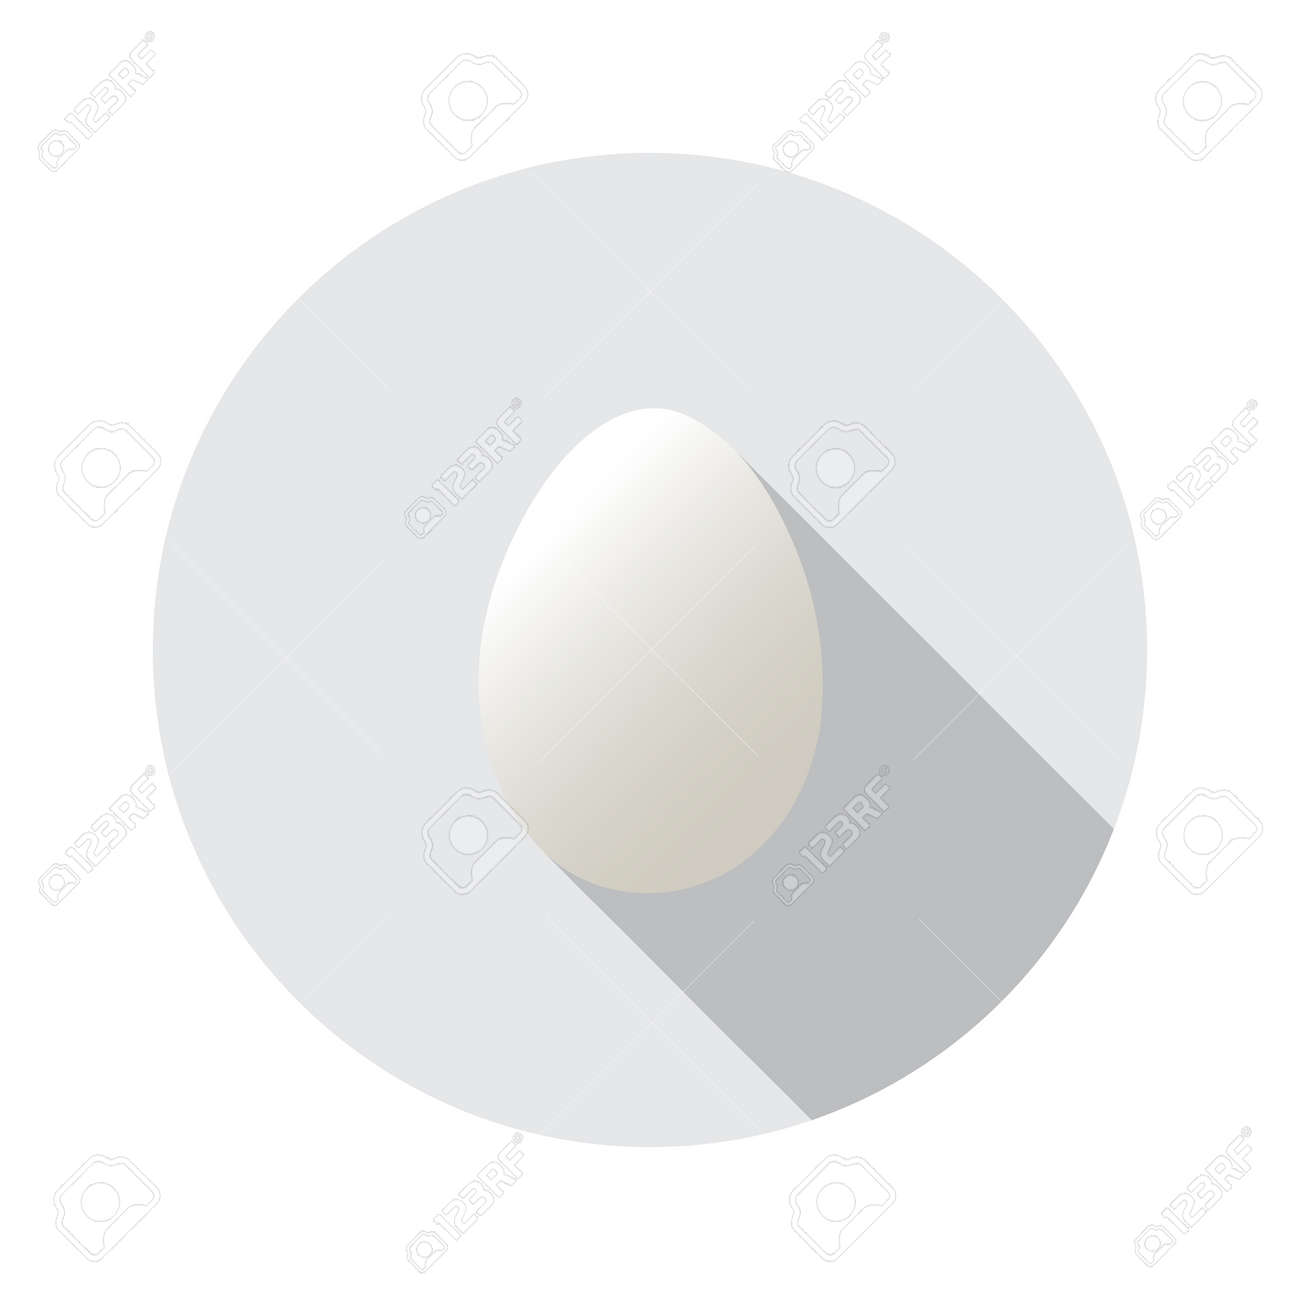 Realistic Vector Shape Of Egg Easter Egg Shape And Isolated